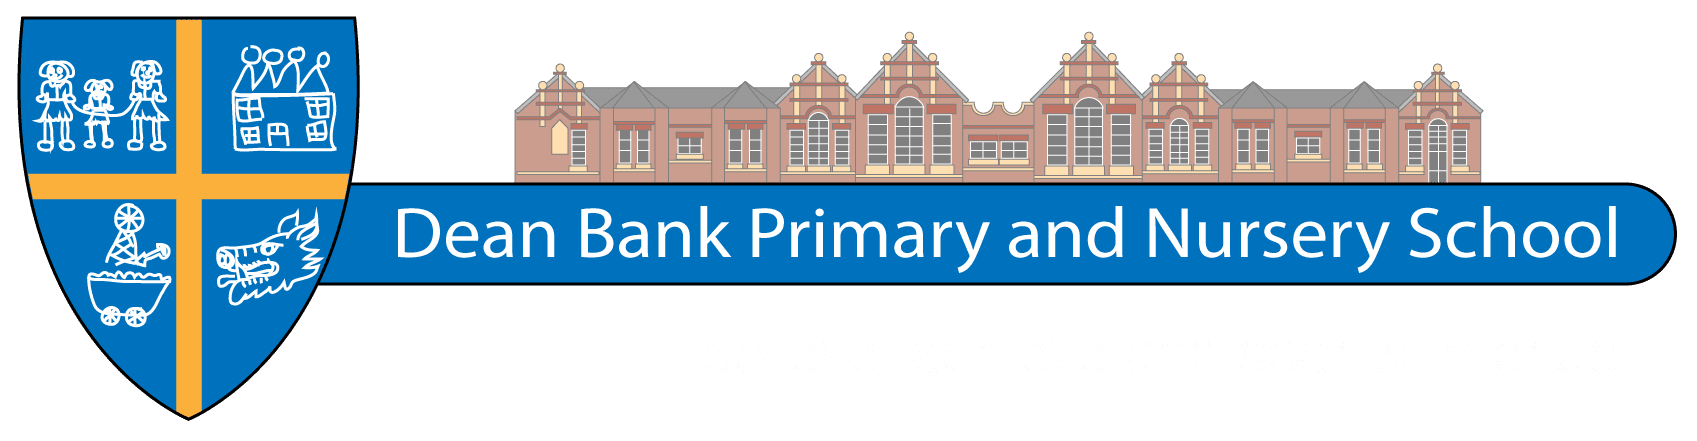 Dean Bank Primary and Nursery School